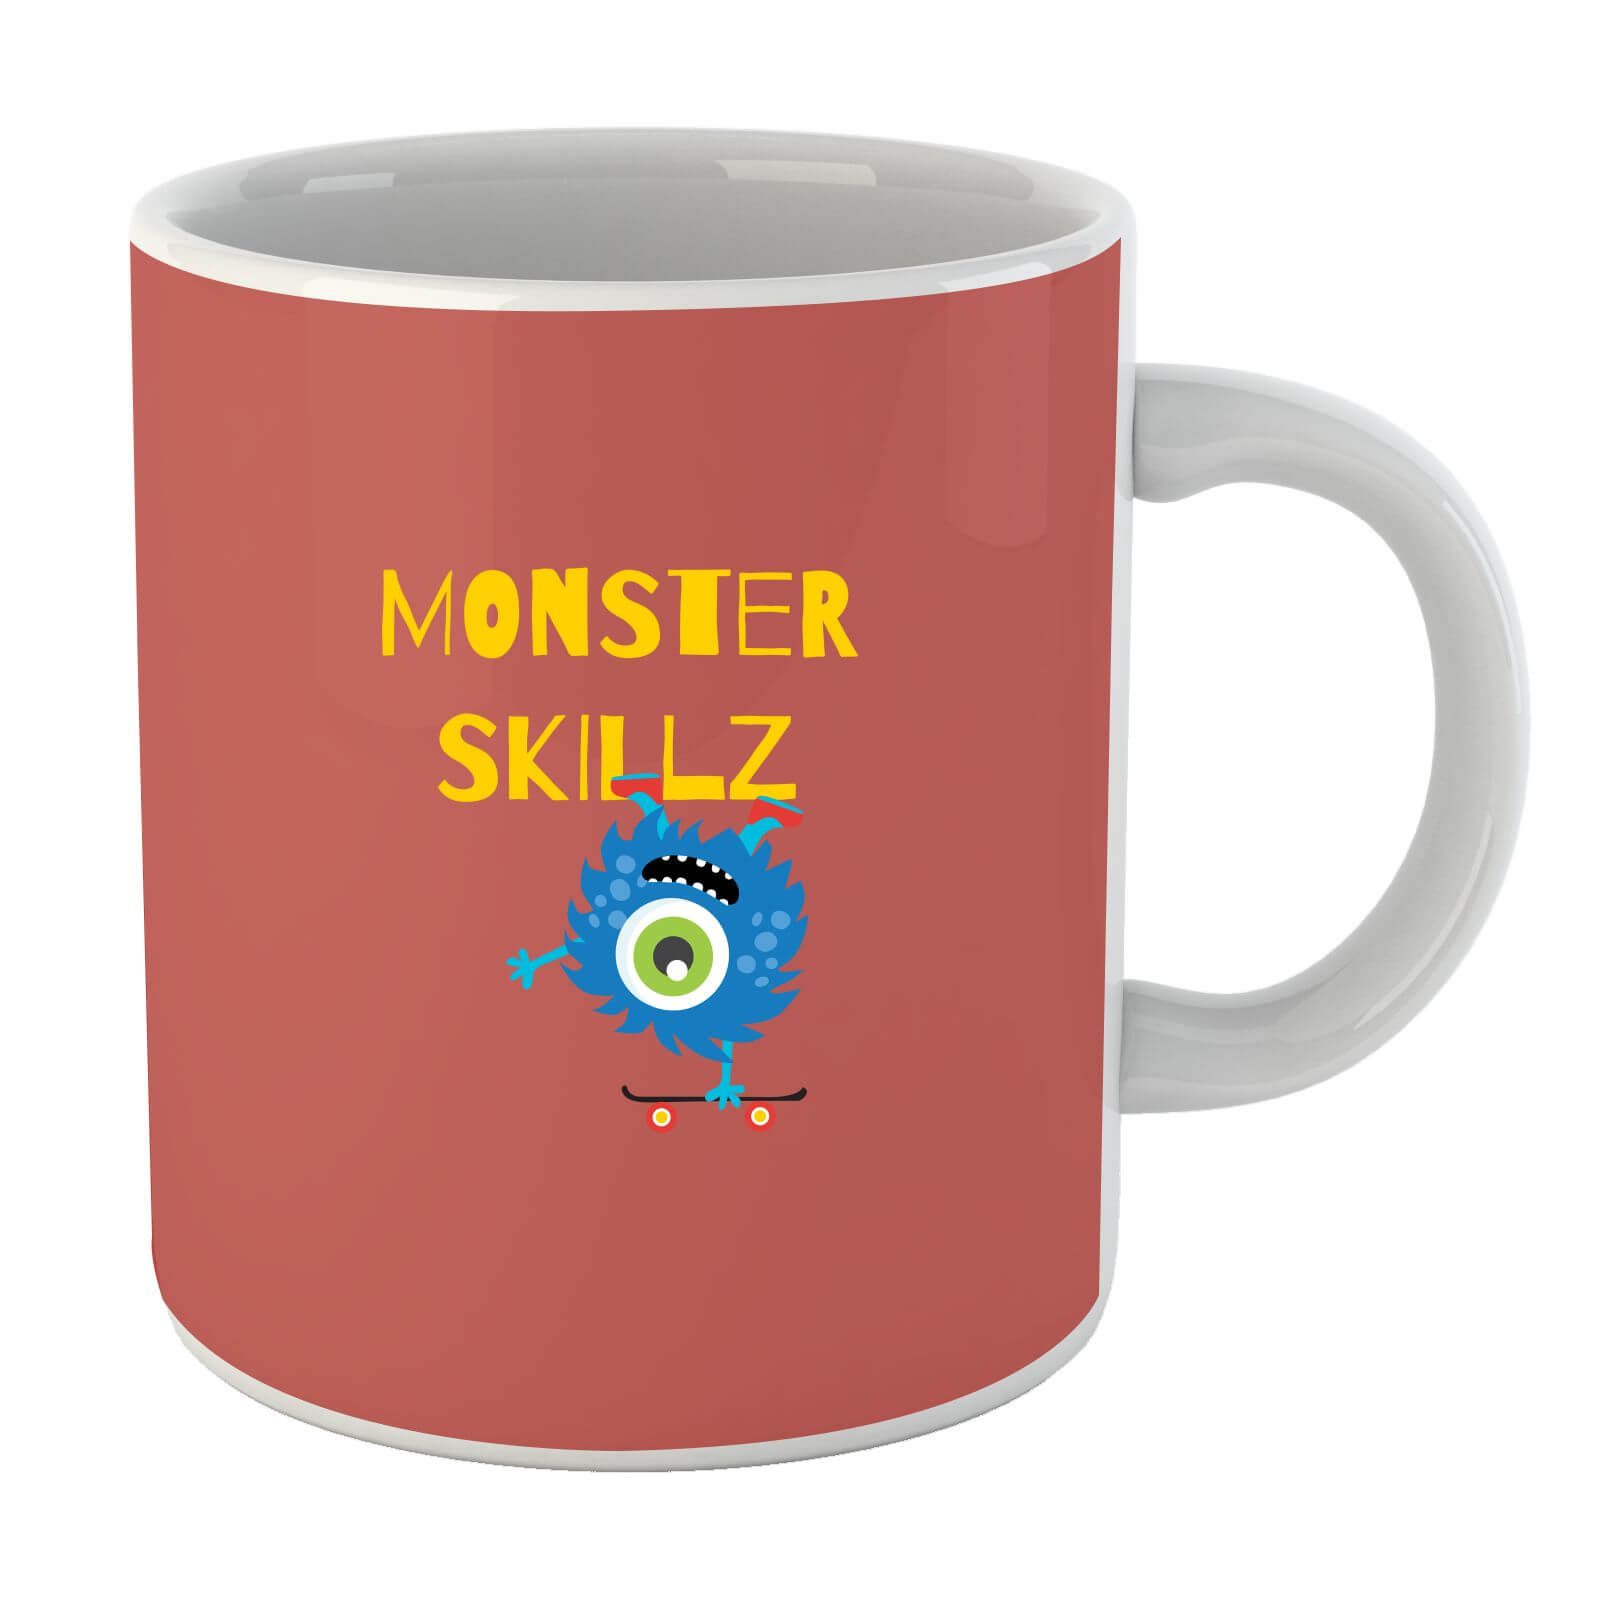 Monster Skillz Mug